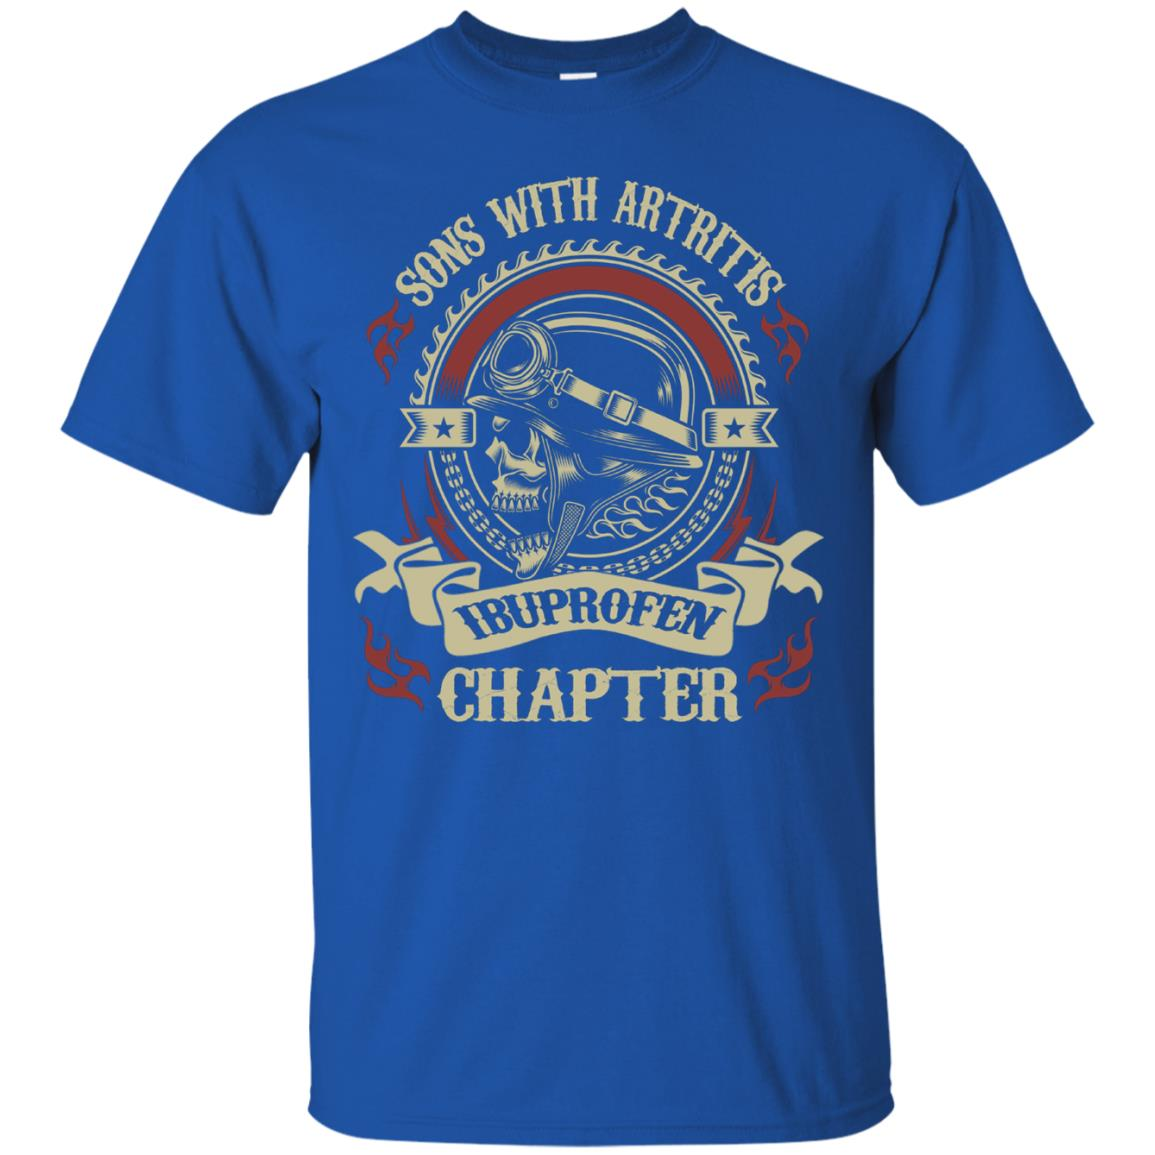 bb03b0f8 Awesome sons with arthritis ibuprofen chapter funny bikers t shirt ...